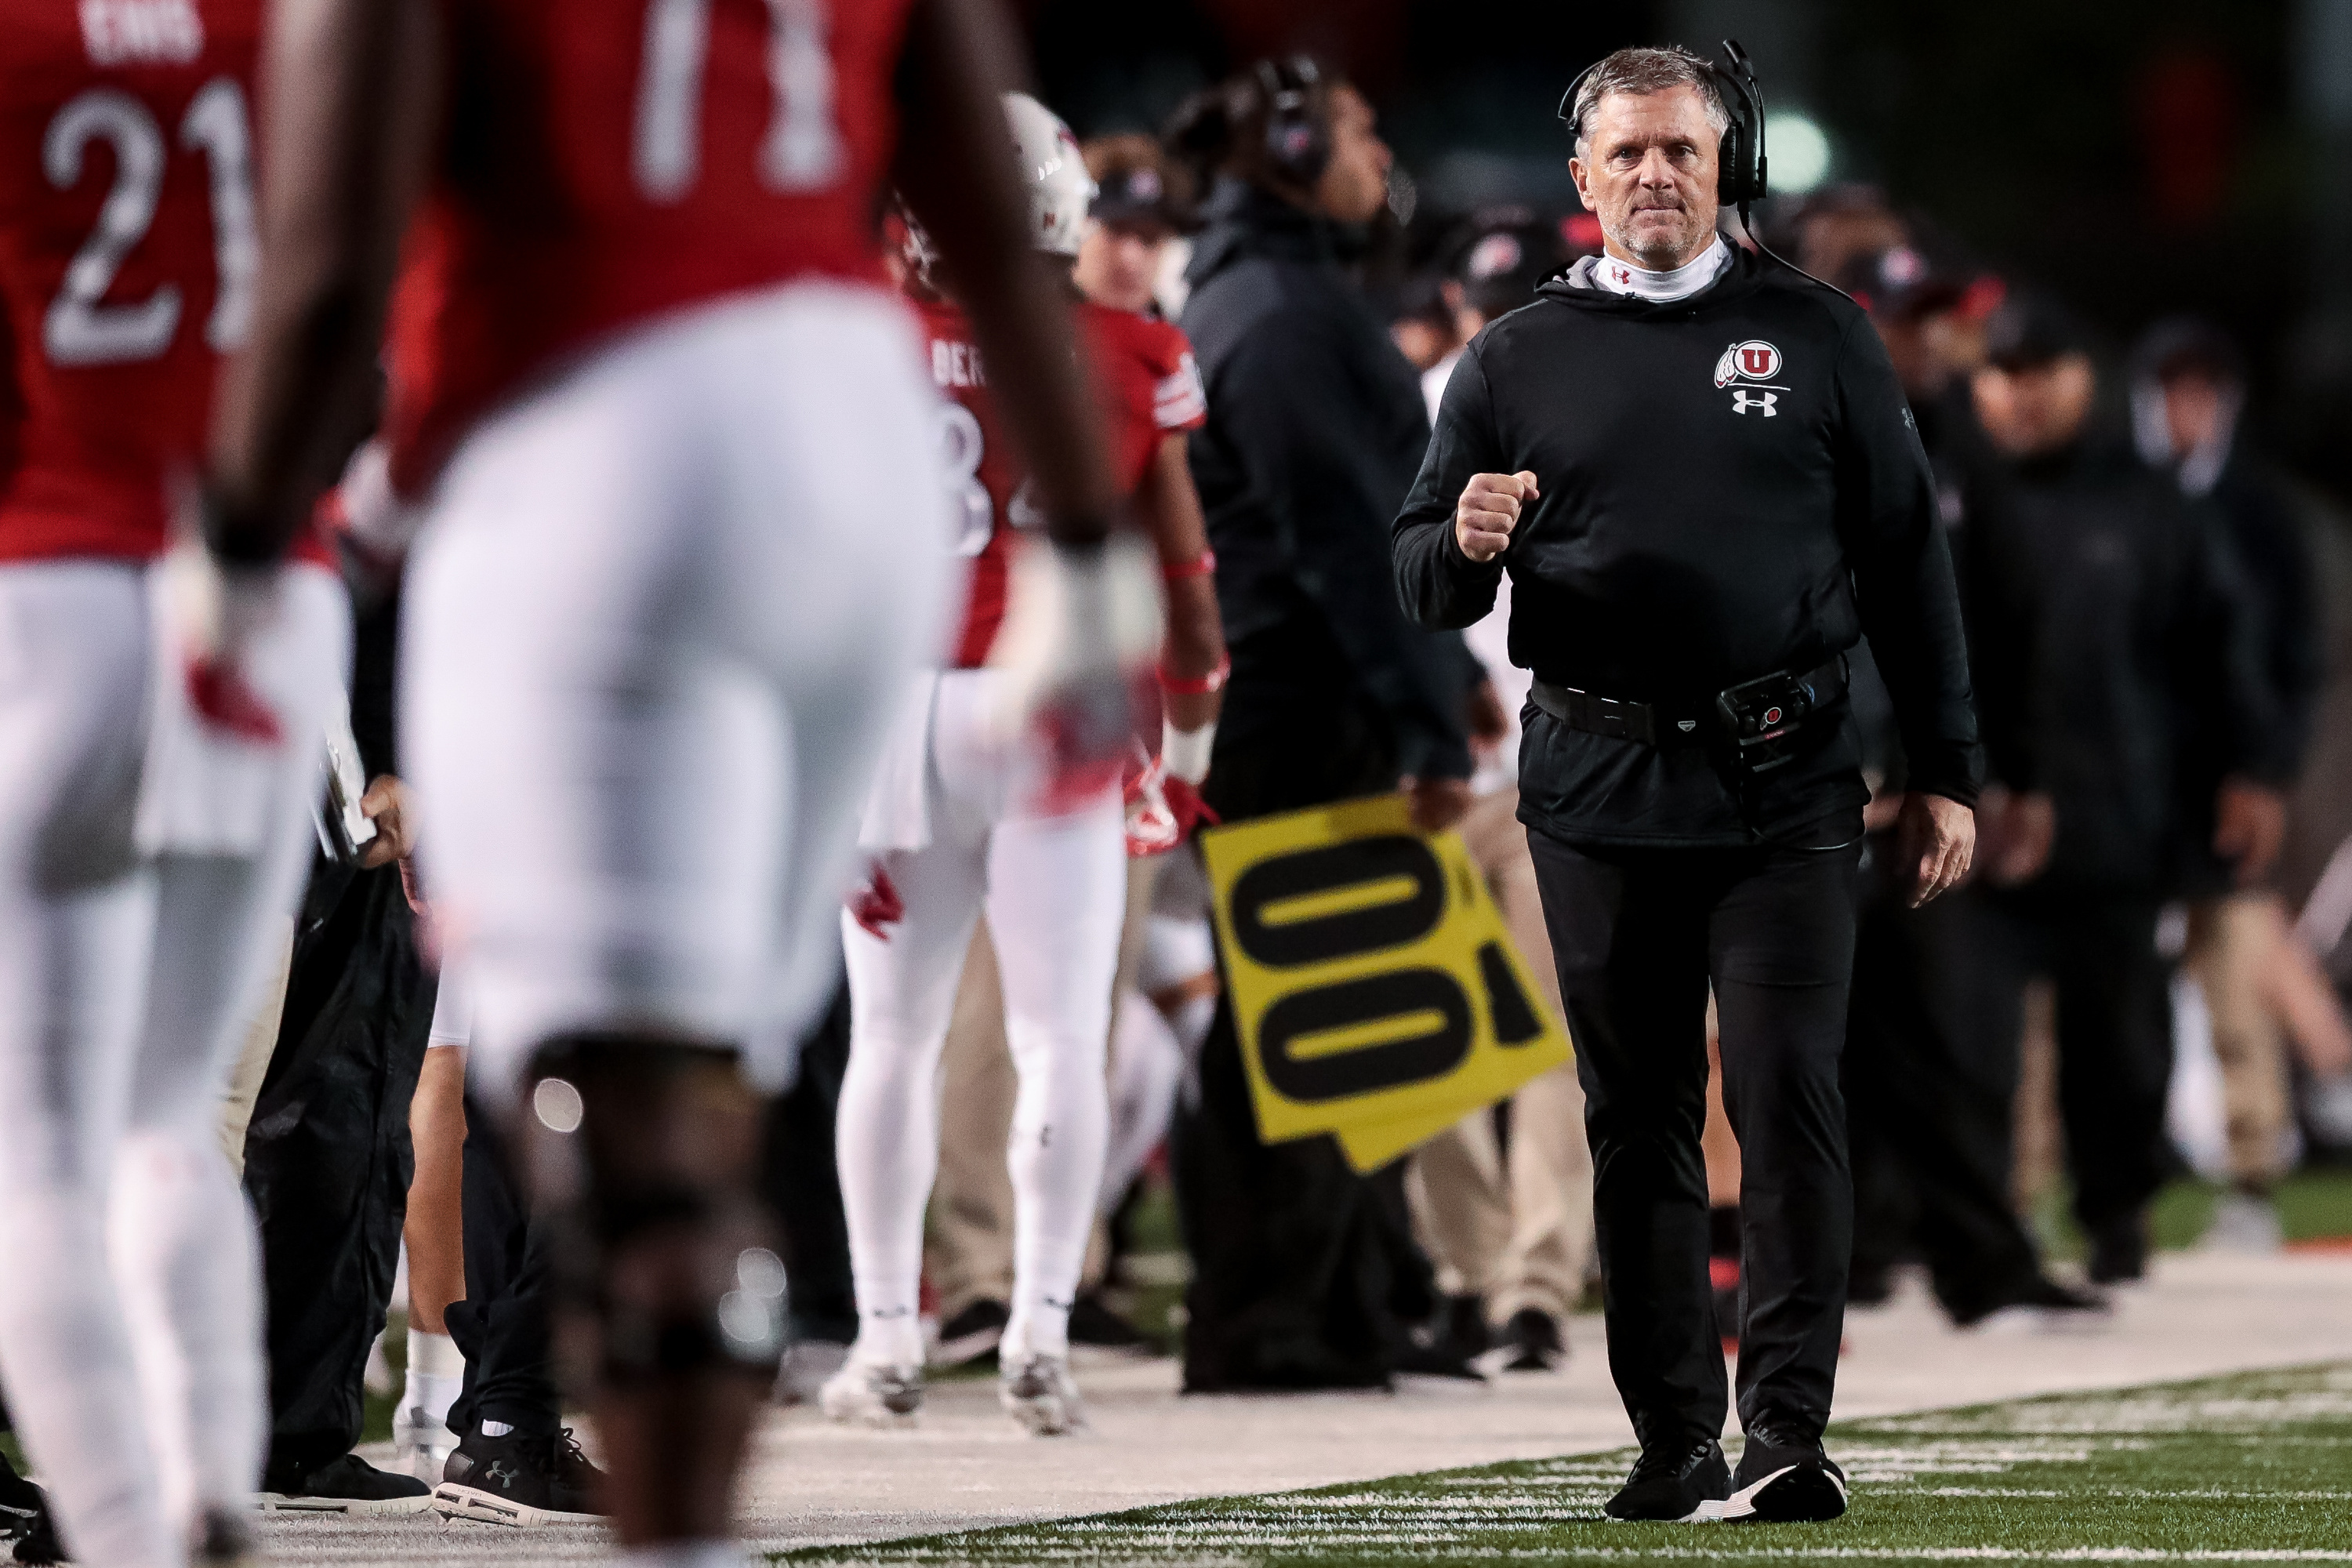 Utah Utes head coach Kyle Whittingham pumps his fist after wide receiver Derrick Vickers (8) scored on a 7-yard run, putting the Utes up 31-13 over the Washington State Cougars after the PAT, at Rice-Eccles Stadium in Salt Lake City on Saturday, Sept. 28, 2019.